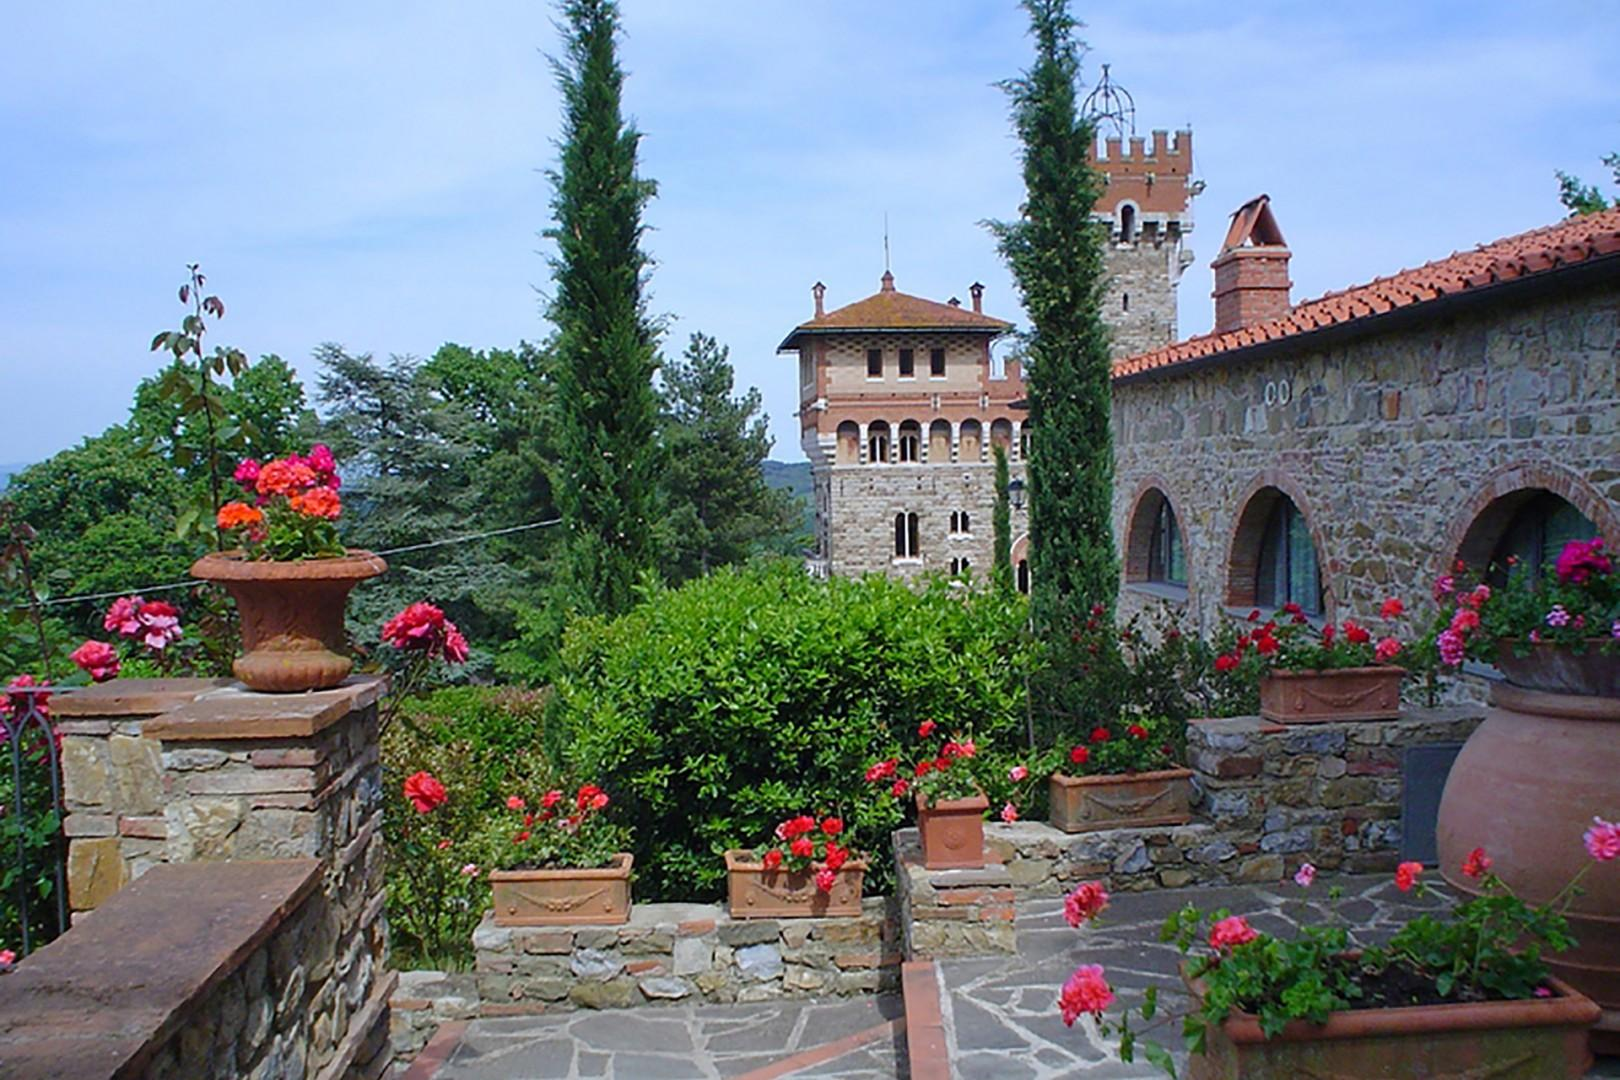 The castle is actually less than 200 years old, it was designed by the famous architect Coppede.